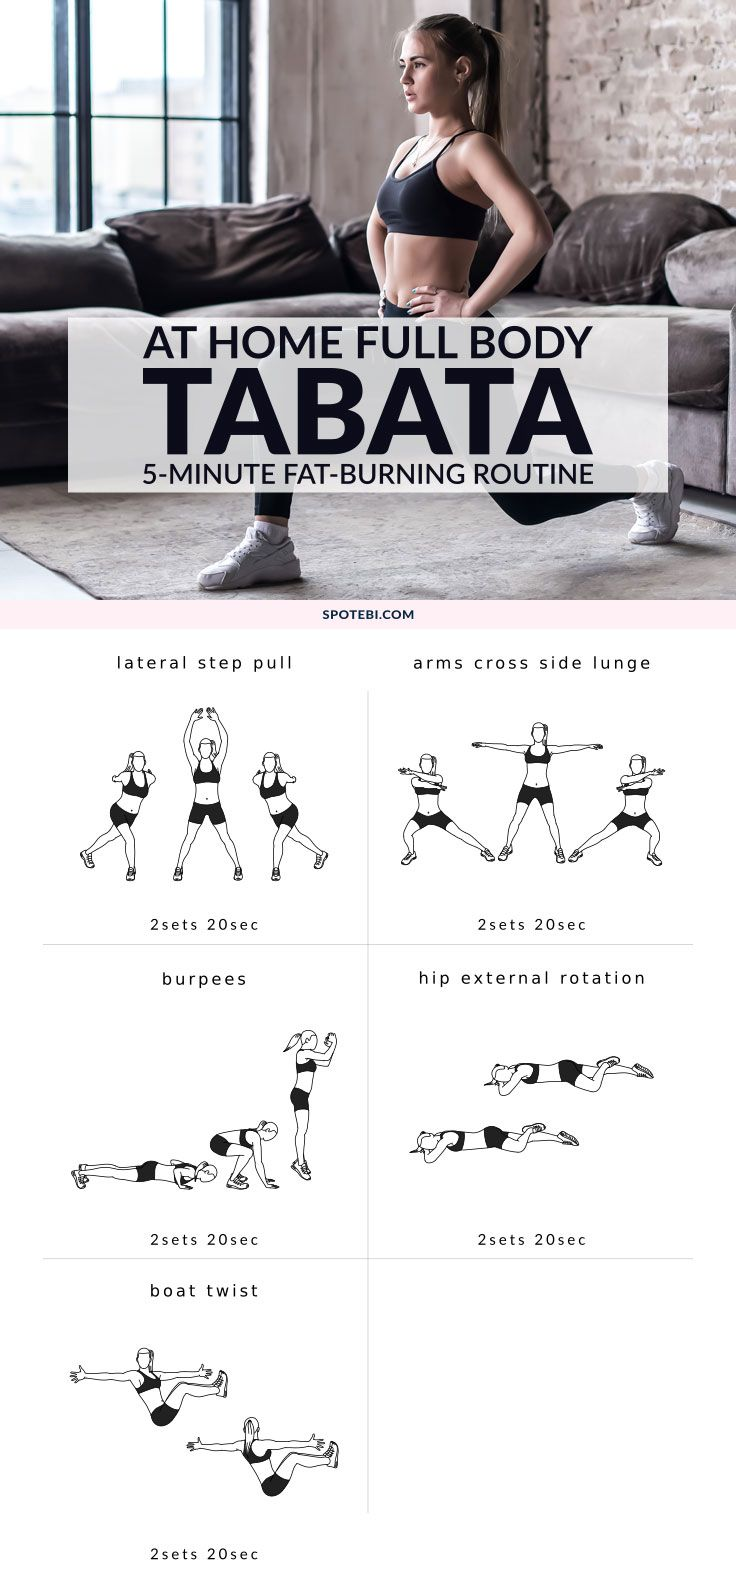 A Tabata workout is a short HIIT that increases aerobic and anaerobic capacity, resting metabolic rate, and can help you burn more fat than traditional aerobic workouts. This 5-minute Tabata inspired workout can be done anywhere and without any additional equipment and because it's only 5 minutes long it's perfect for helping you make exercise a daily habit and overcome a sedentary lifestyle. https://www.spotebi.com/workout-routines/5-minute-fat-burning-tabata-workout/